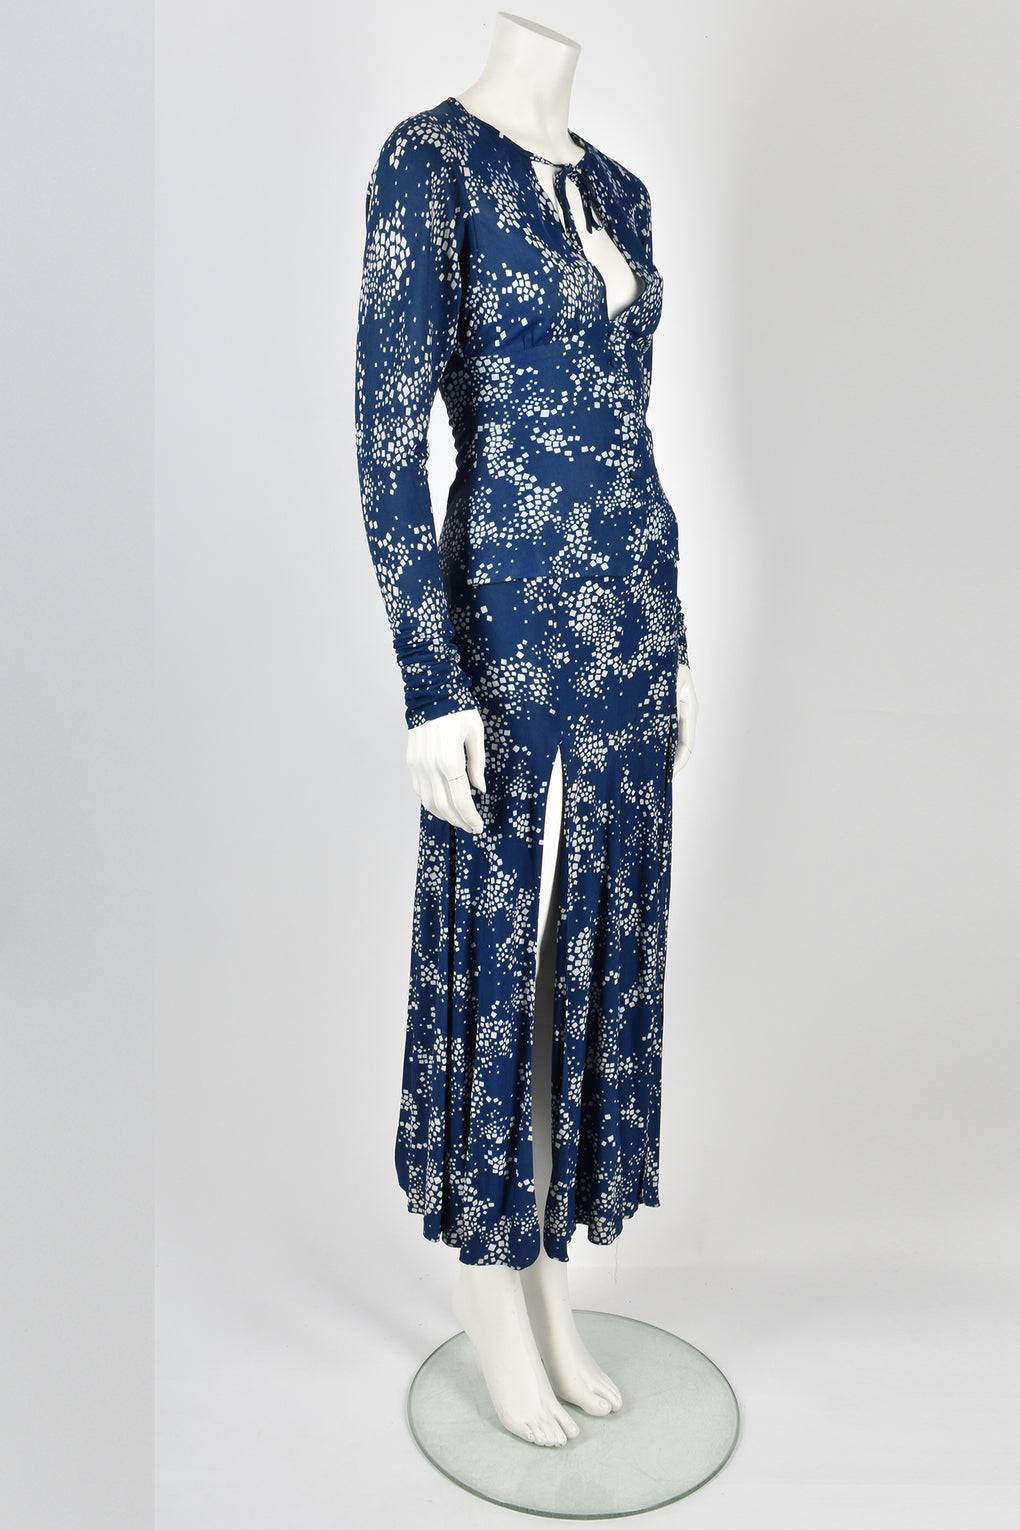 BIBA blue patterned top and skirt set